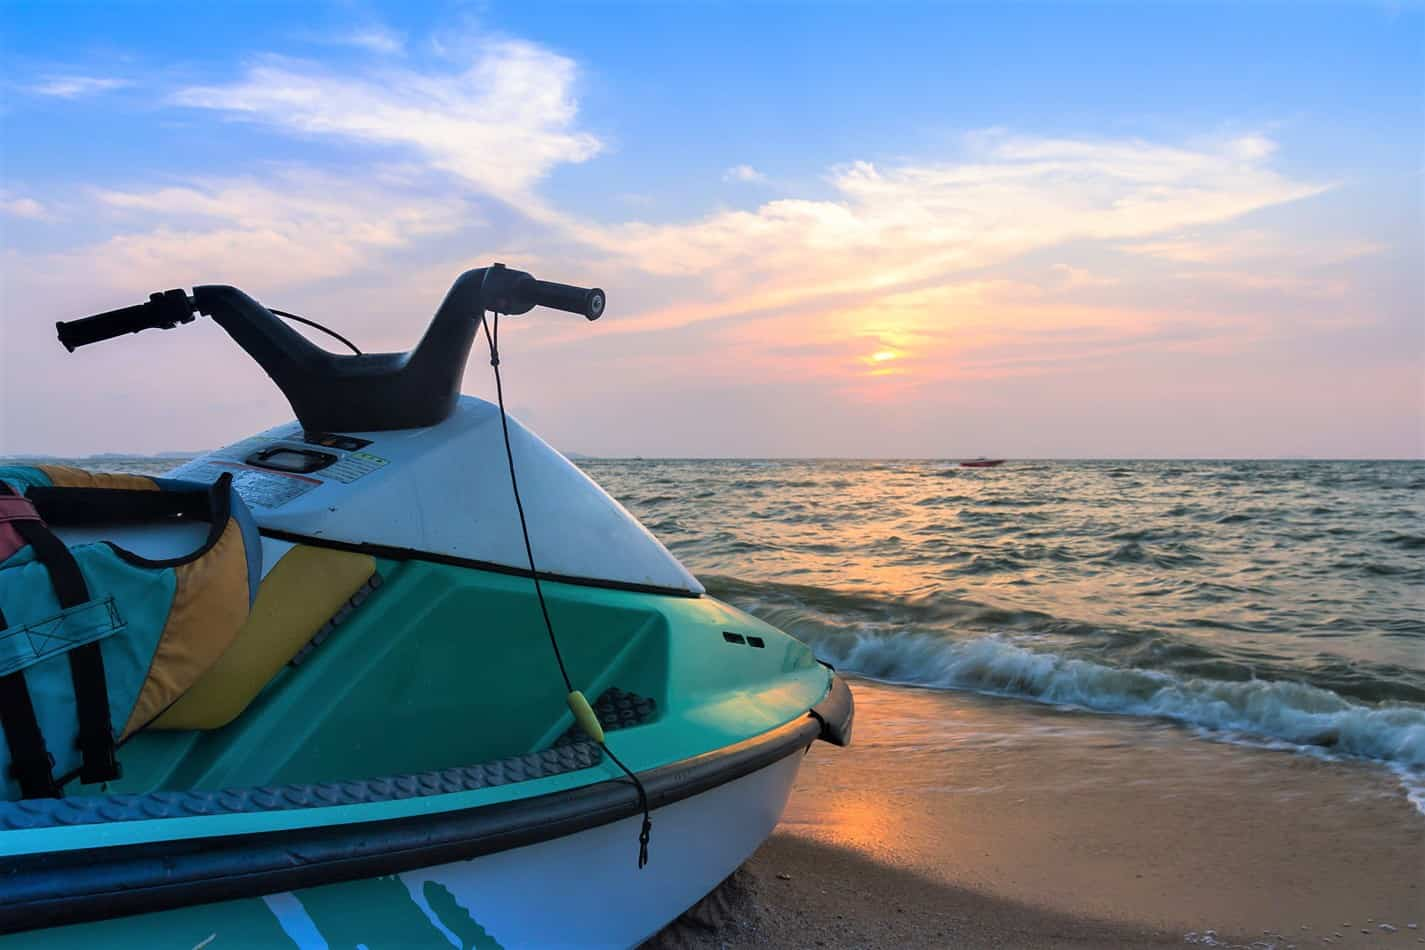 How Much To Rent A Jet Ski